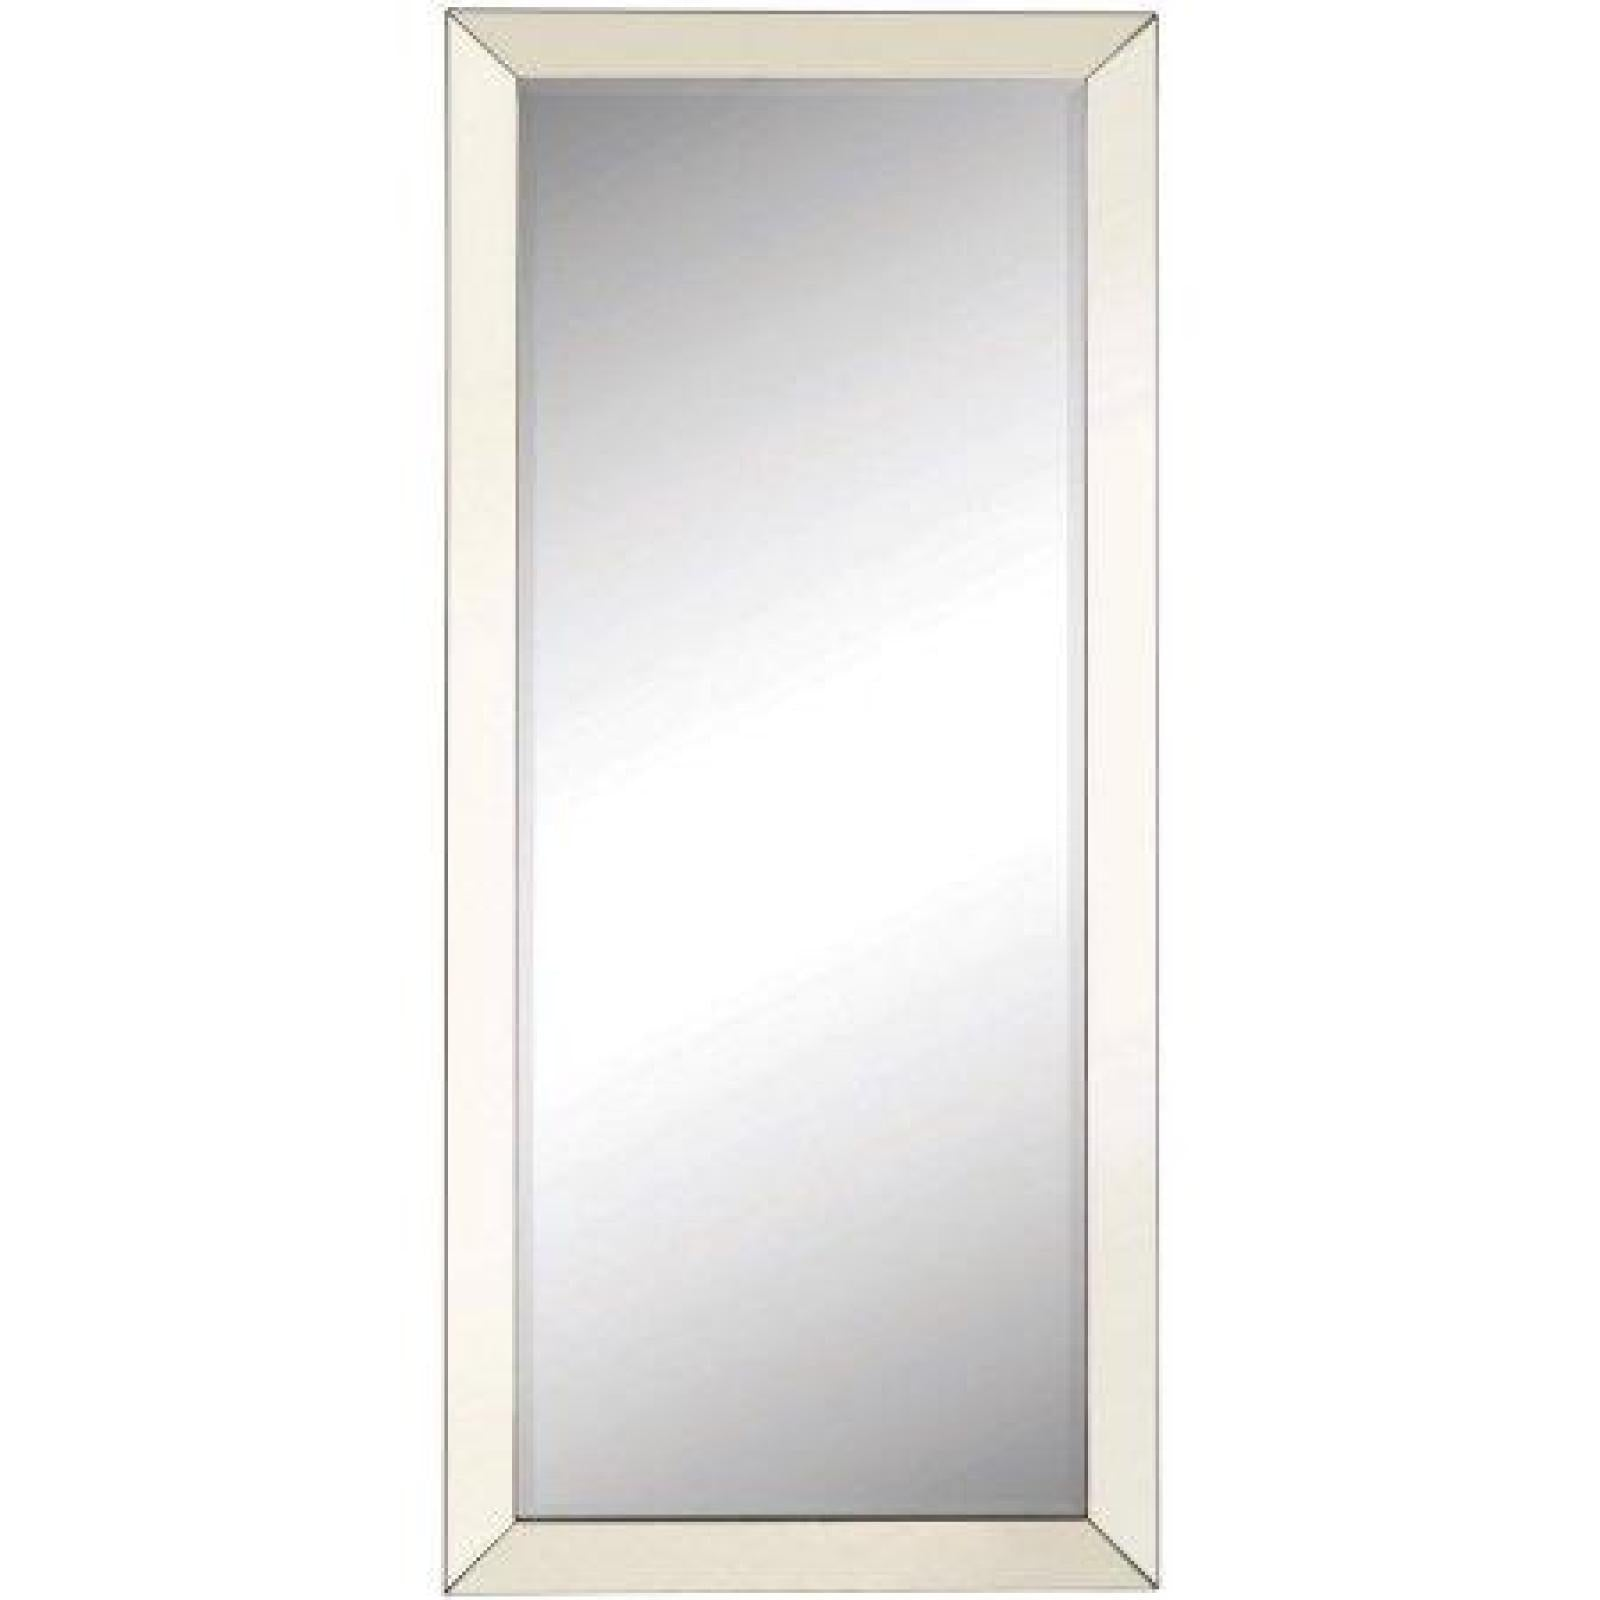 contemporary floor mirror with mirrored frame - Mirrored Frame